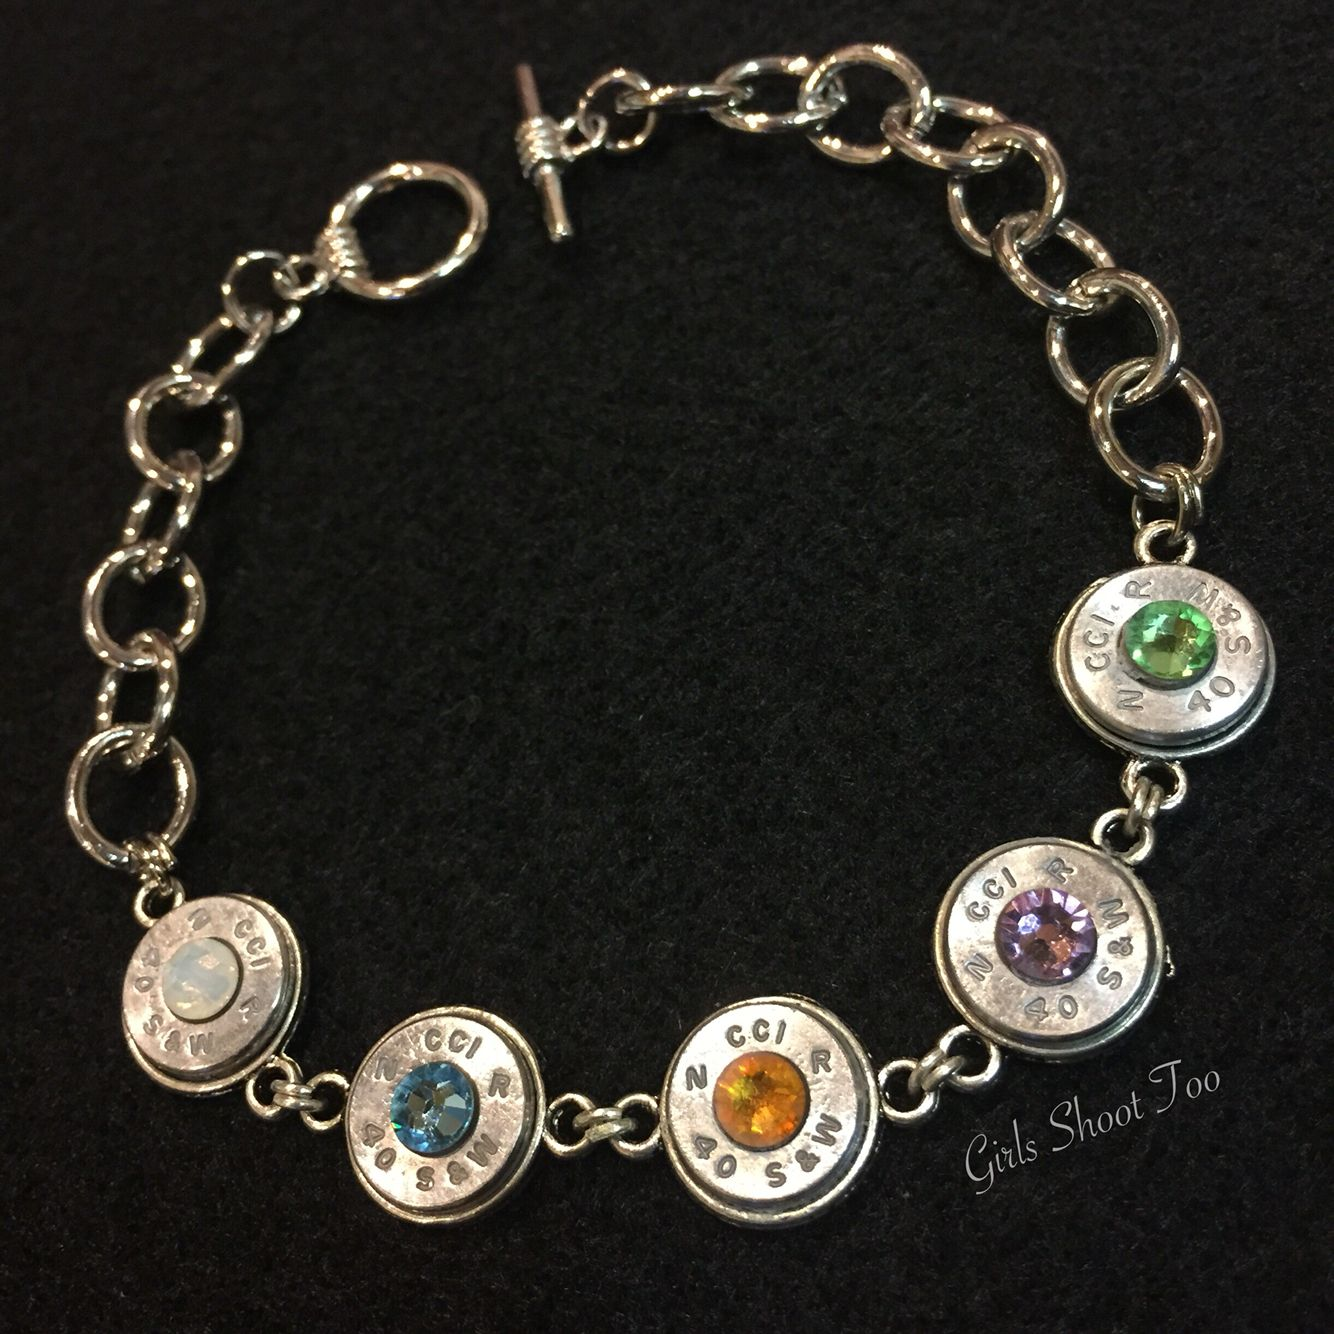 Custom parents+children birthstone bullet bracelet.   https://www.facebook.com/GirlsShootToo/